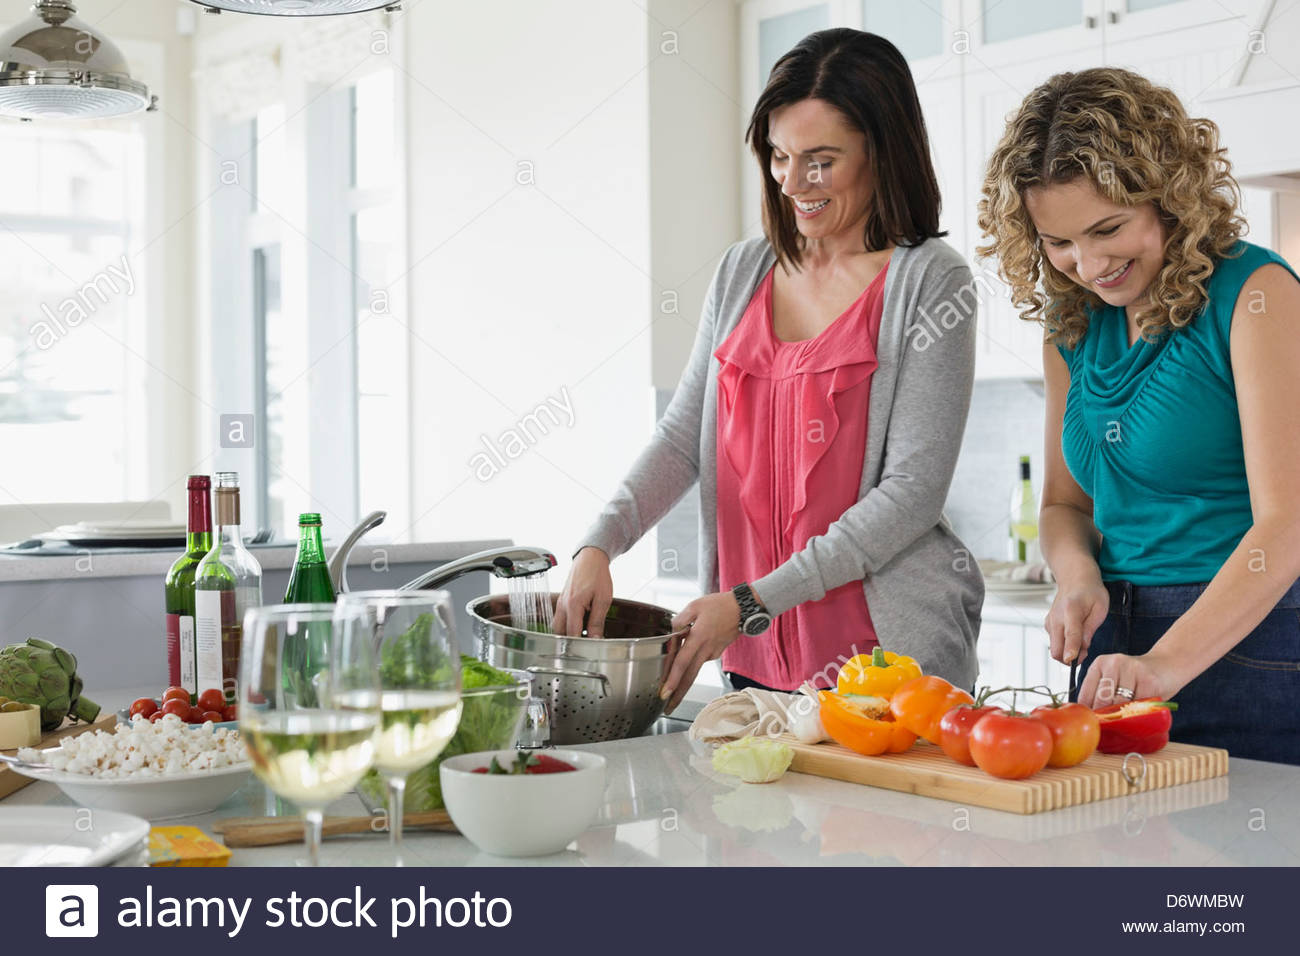 Mature Women cooking together in kitchen Photo Stock